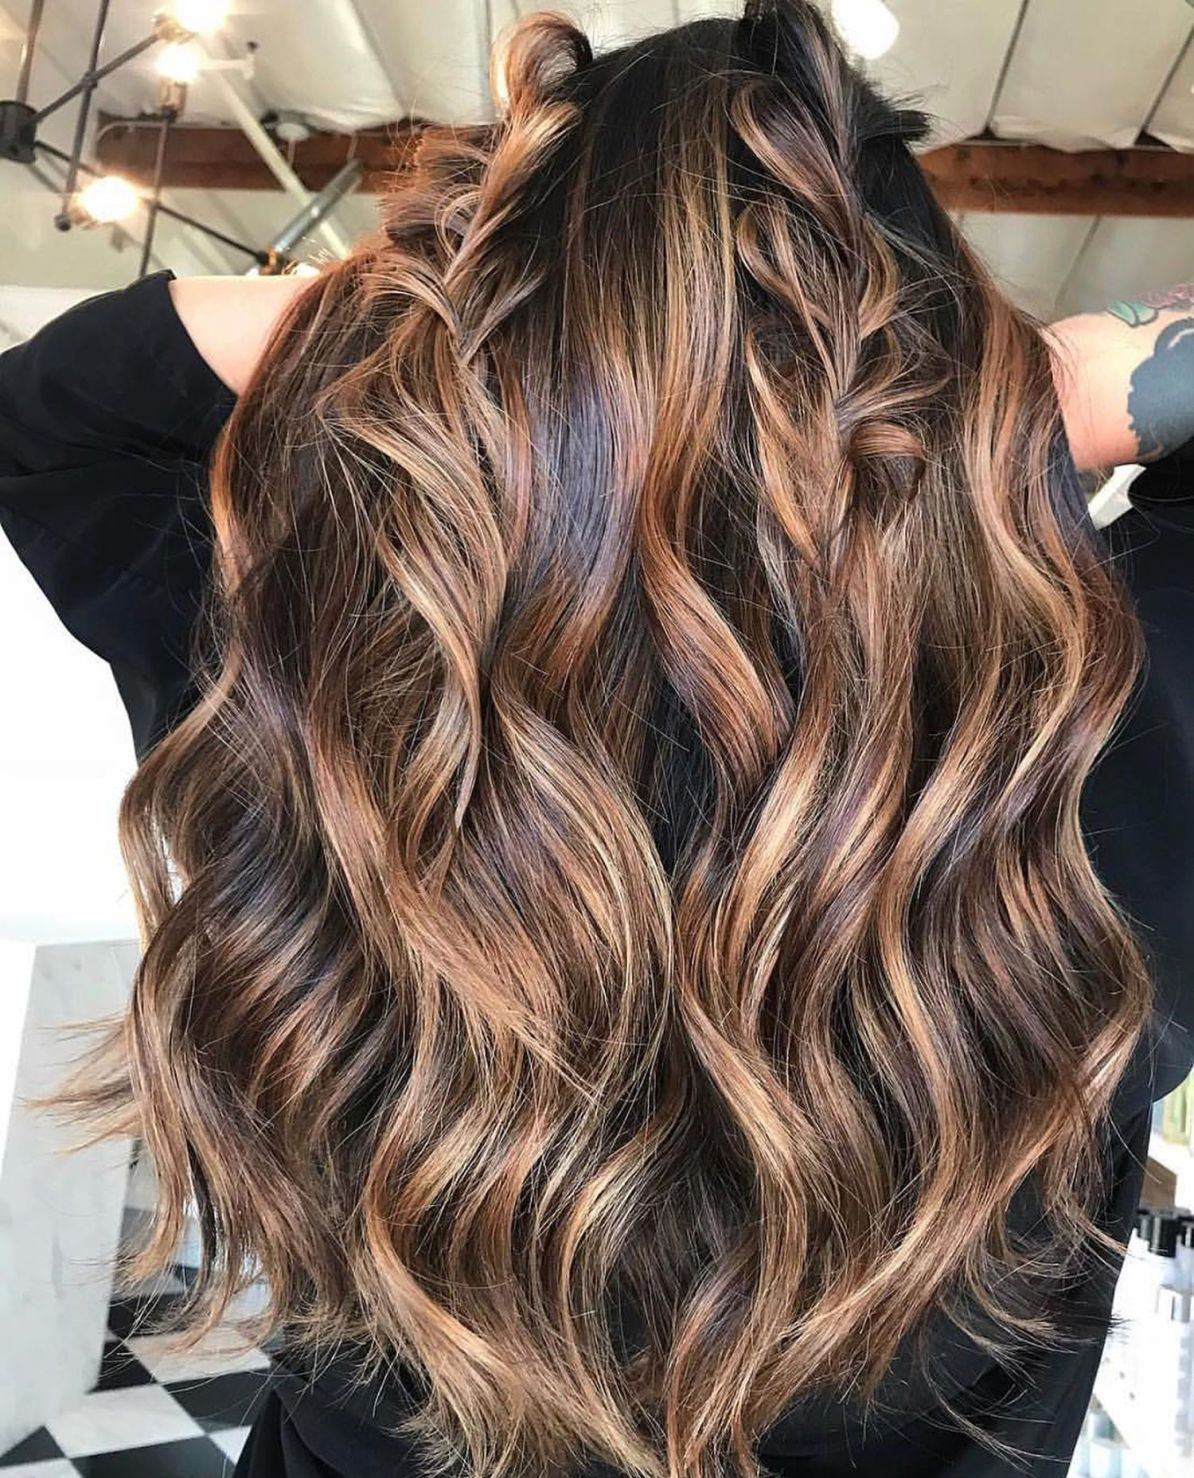 60 Hairstyles Featuring Dark Brown Hair With Highlights In 2020 Brown Hair With Highlights Hair Highlights Brown Blonde Hair